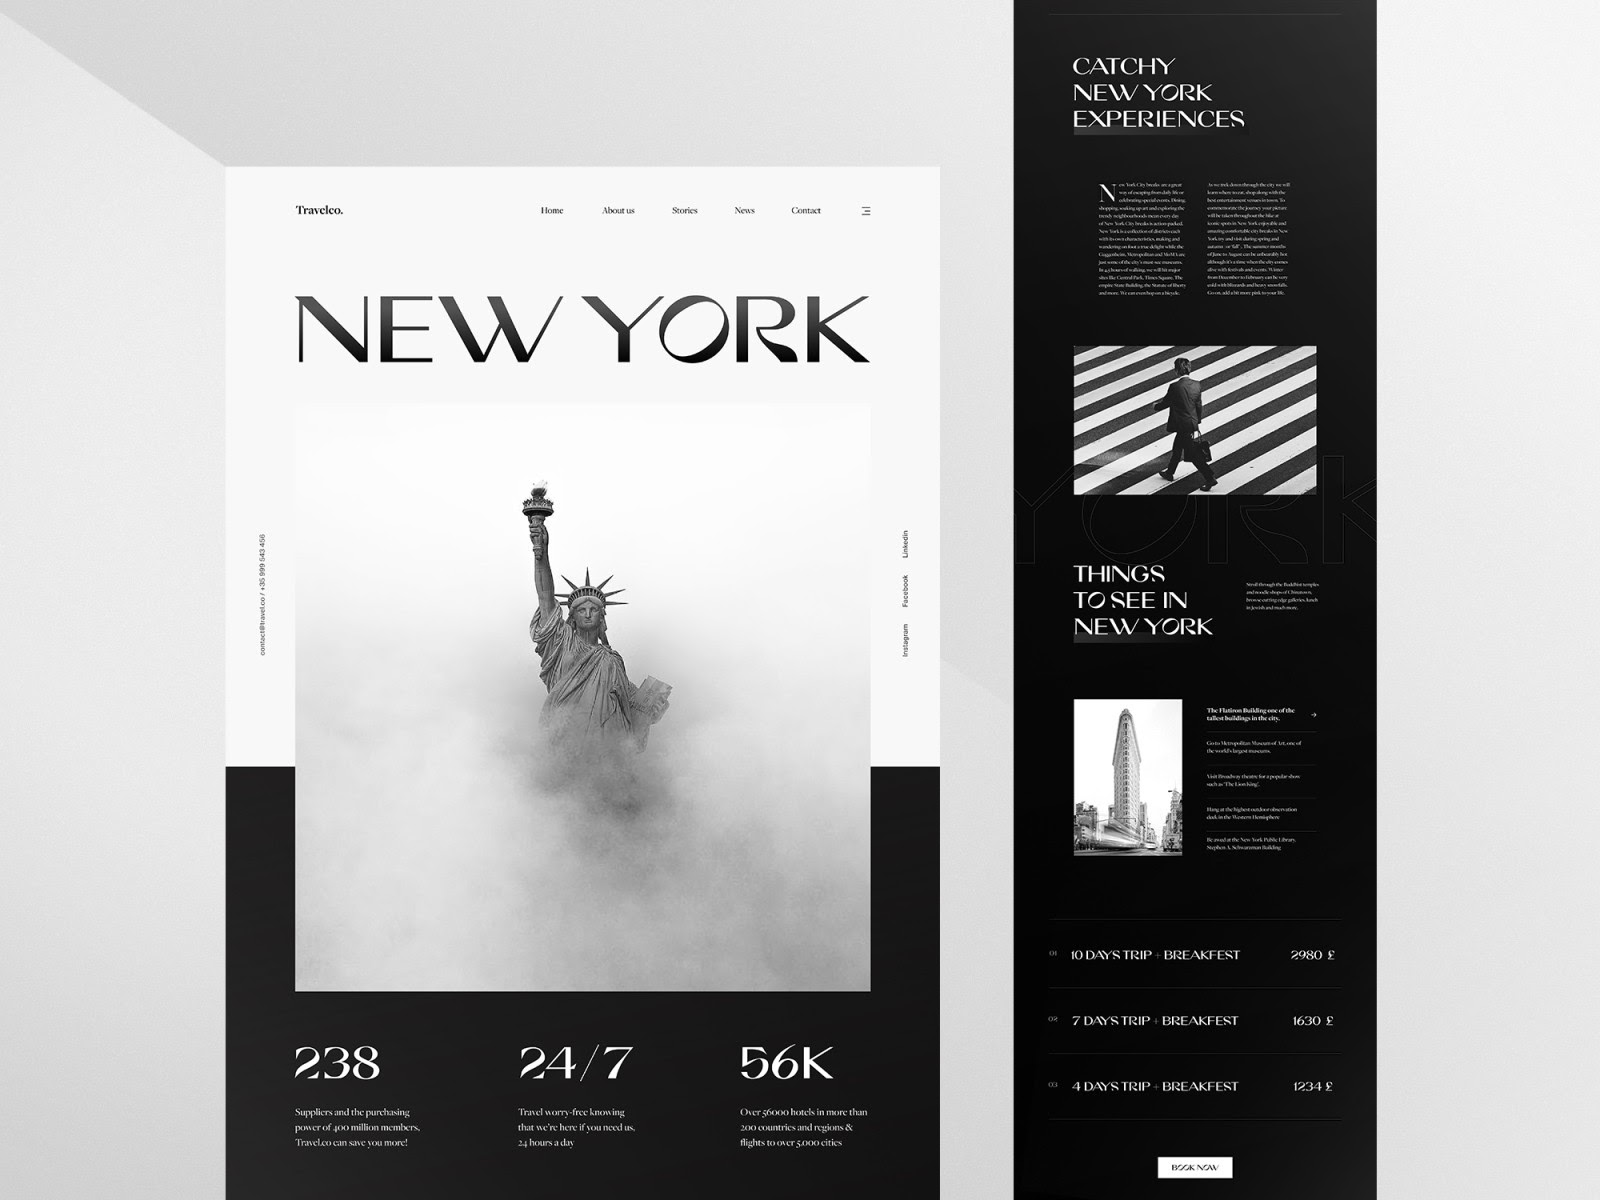 An example of using black as a strong accent color in web design (source: Achraf Elkaami)